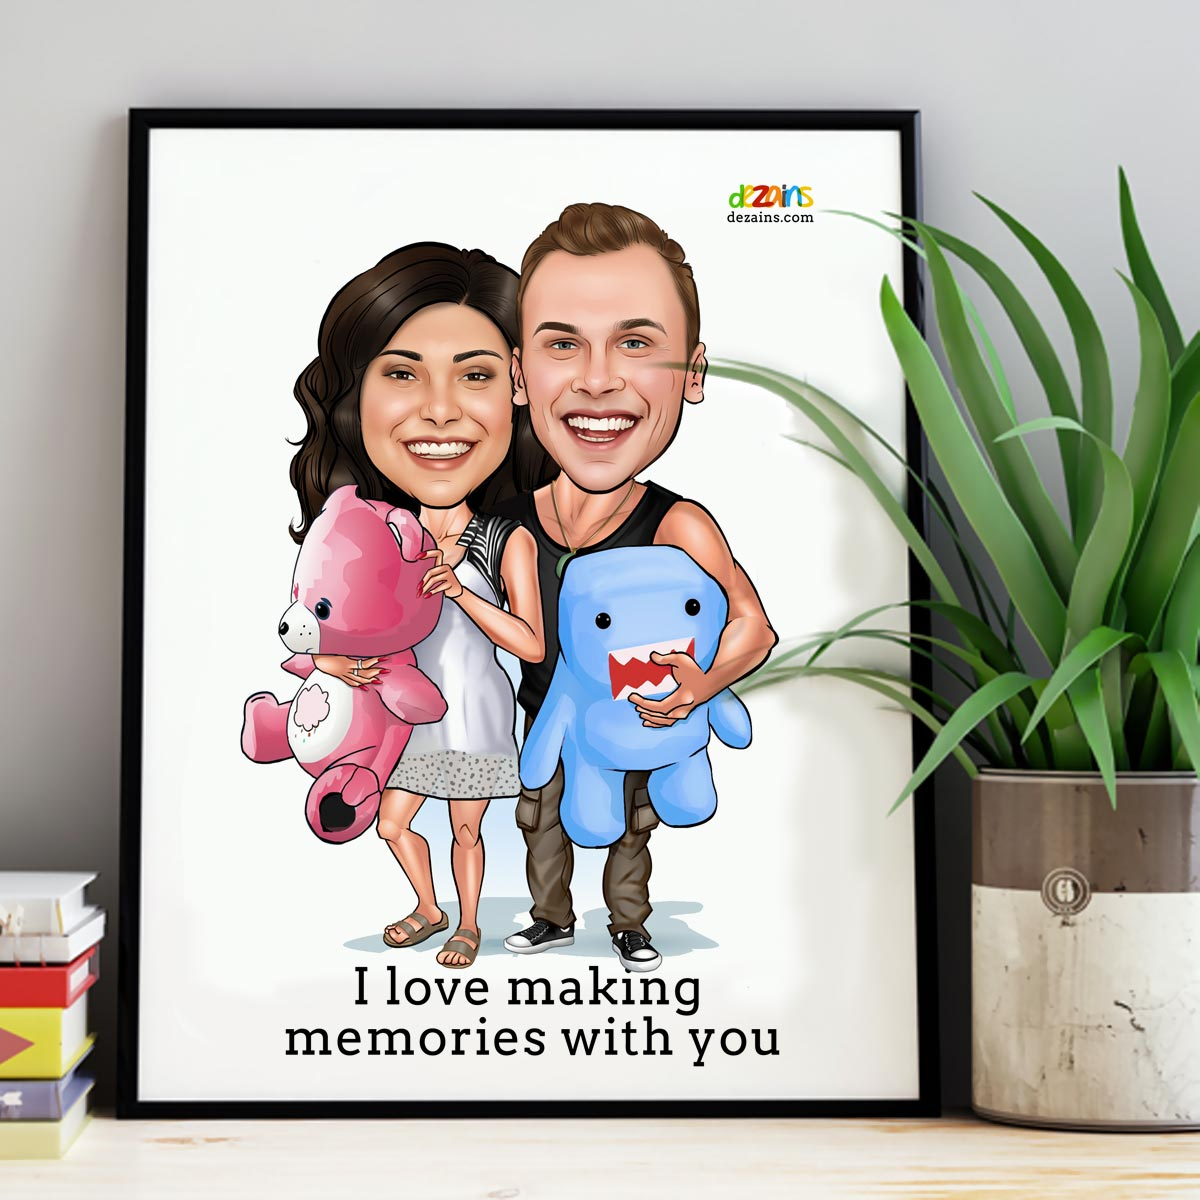 couple-teddy-bear-theme-caricature-by-dezains-2